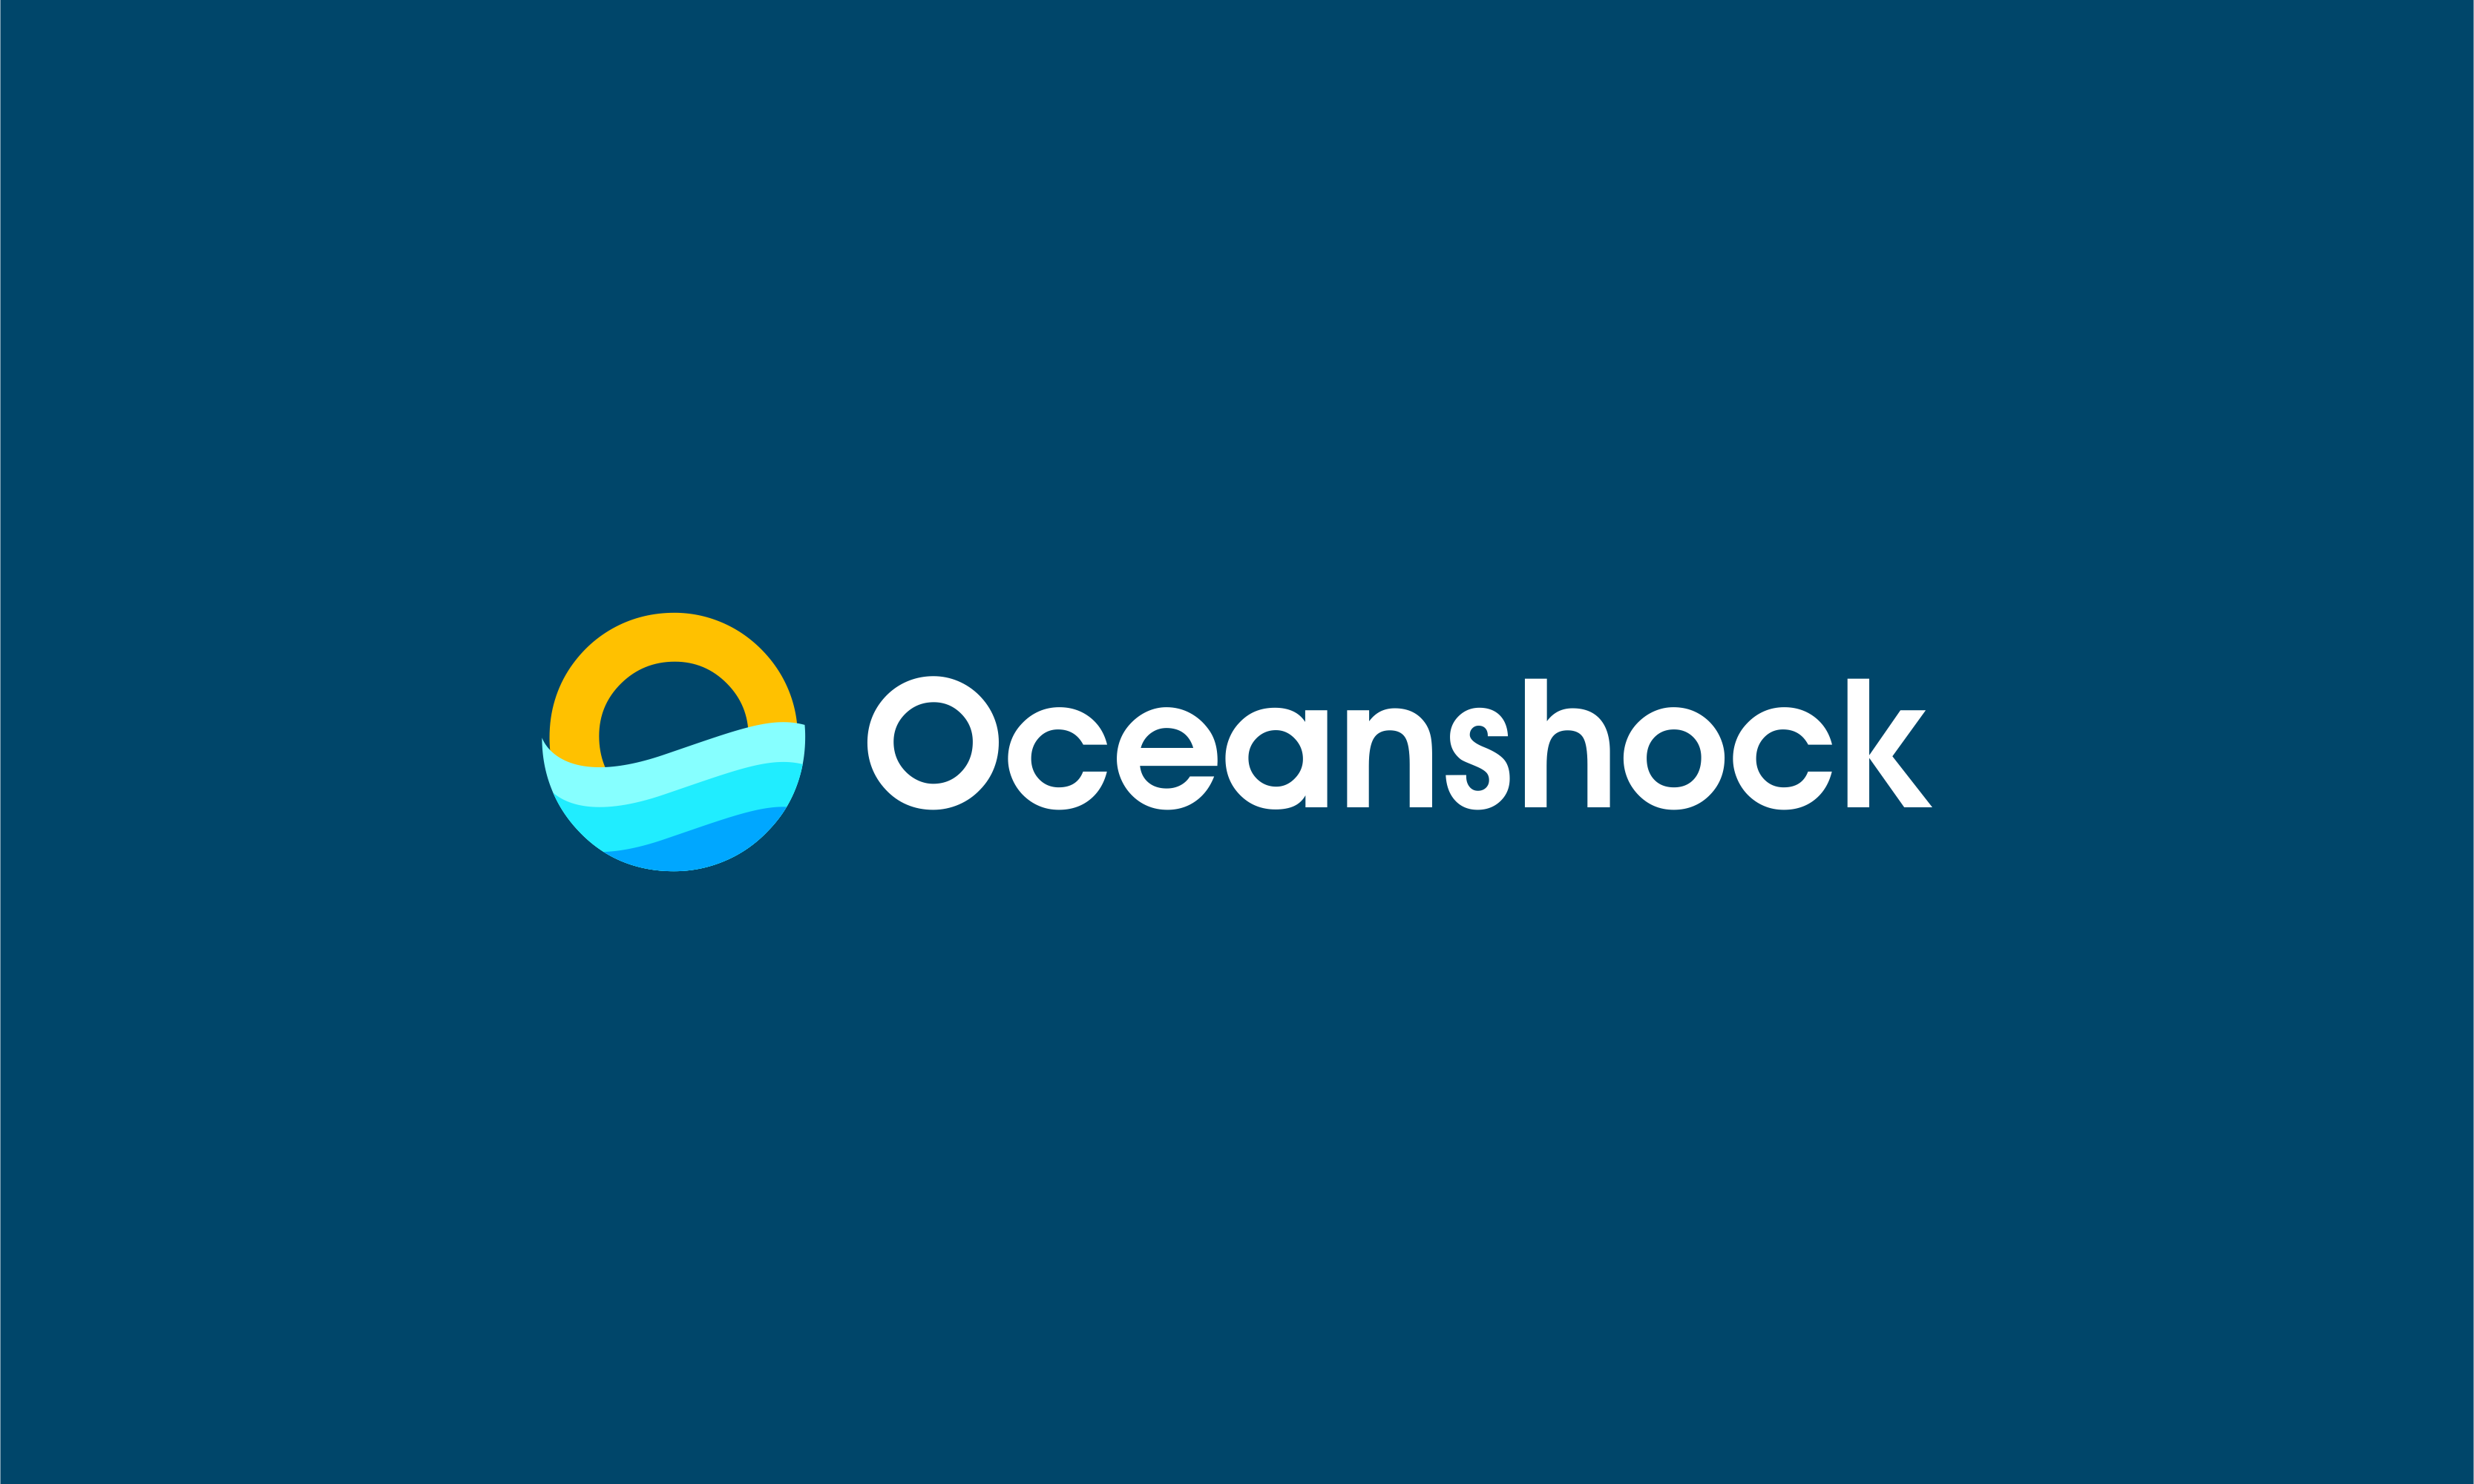 Oceanshock - Fundraising business name for sale